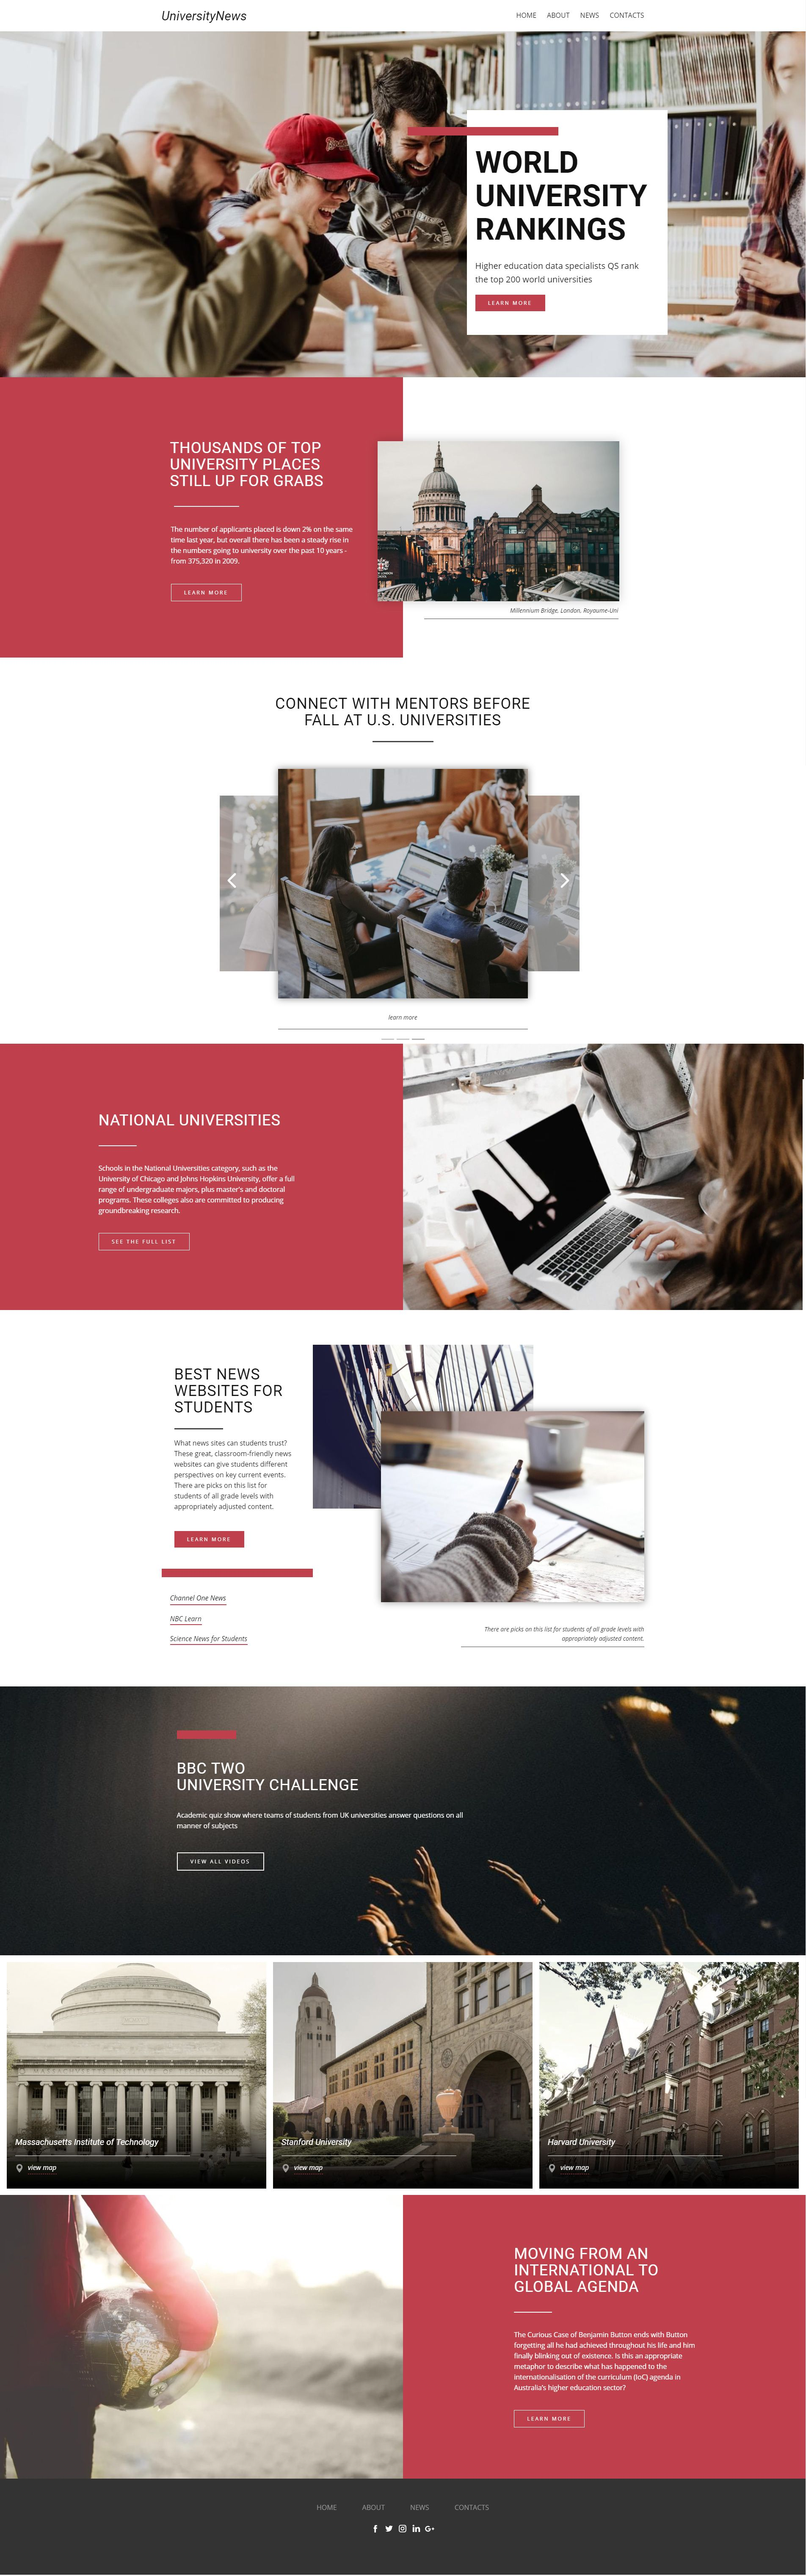 Nicepage Is A New Powerful Web Design Tool And An Easy To Use Builder For Your Websites Blogs And Th Web Design Tools Web Design Inspiration Newsletter Design